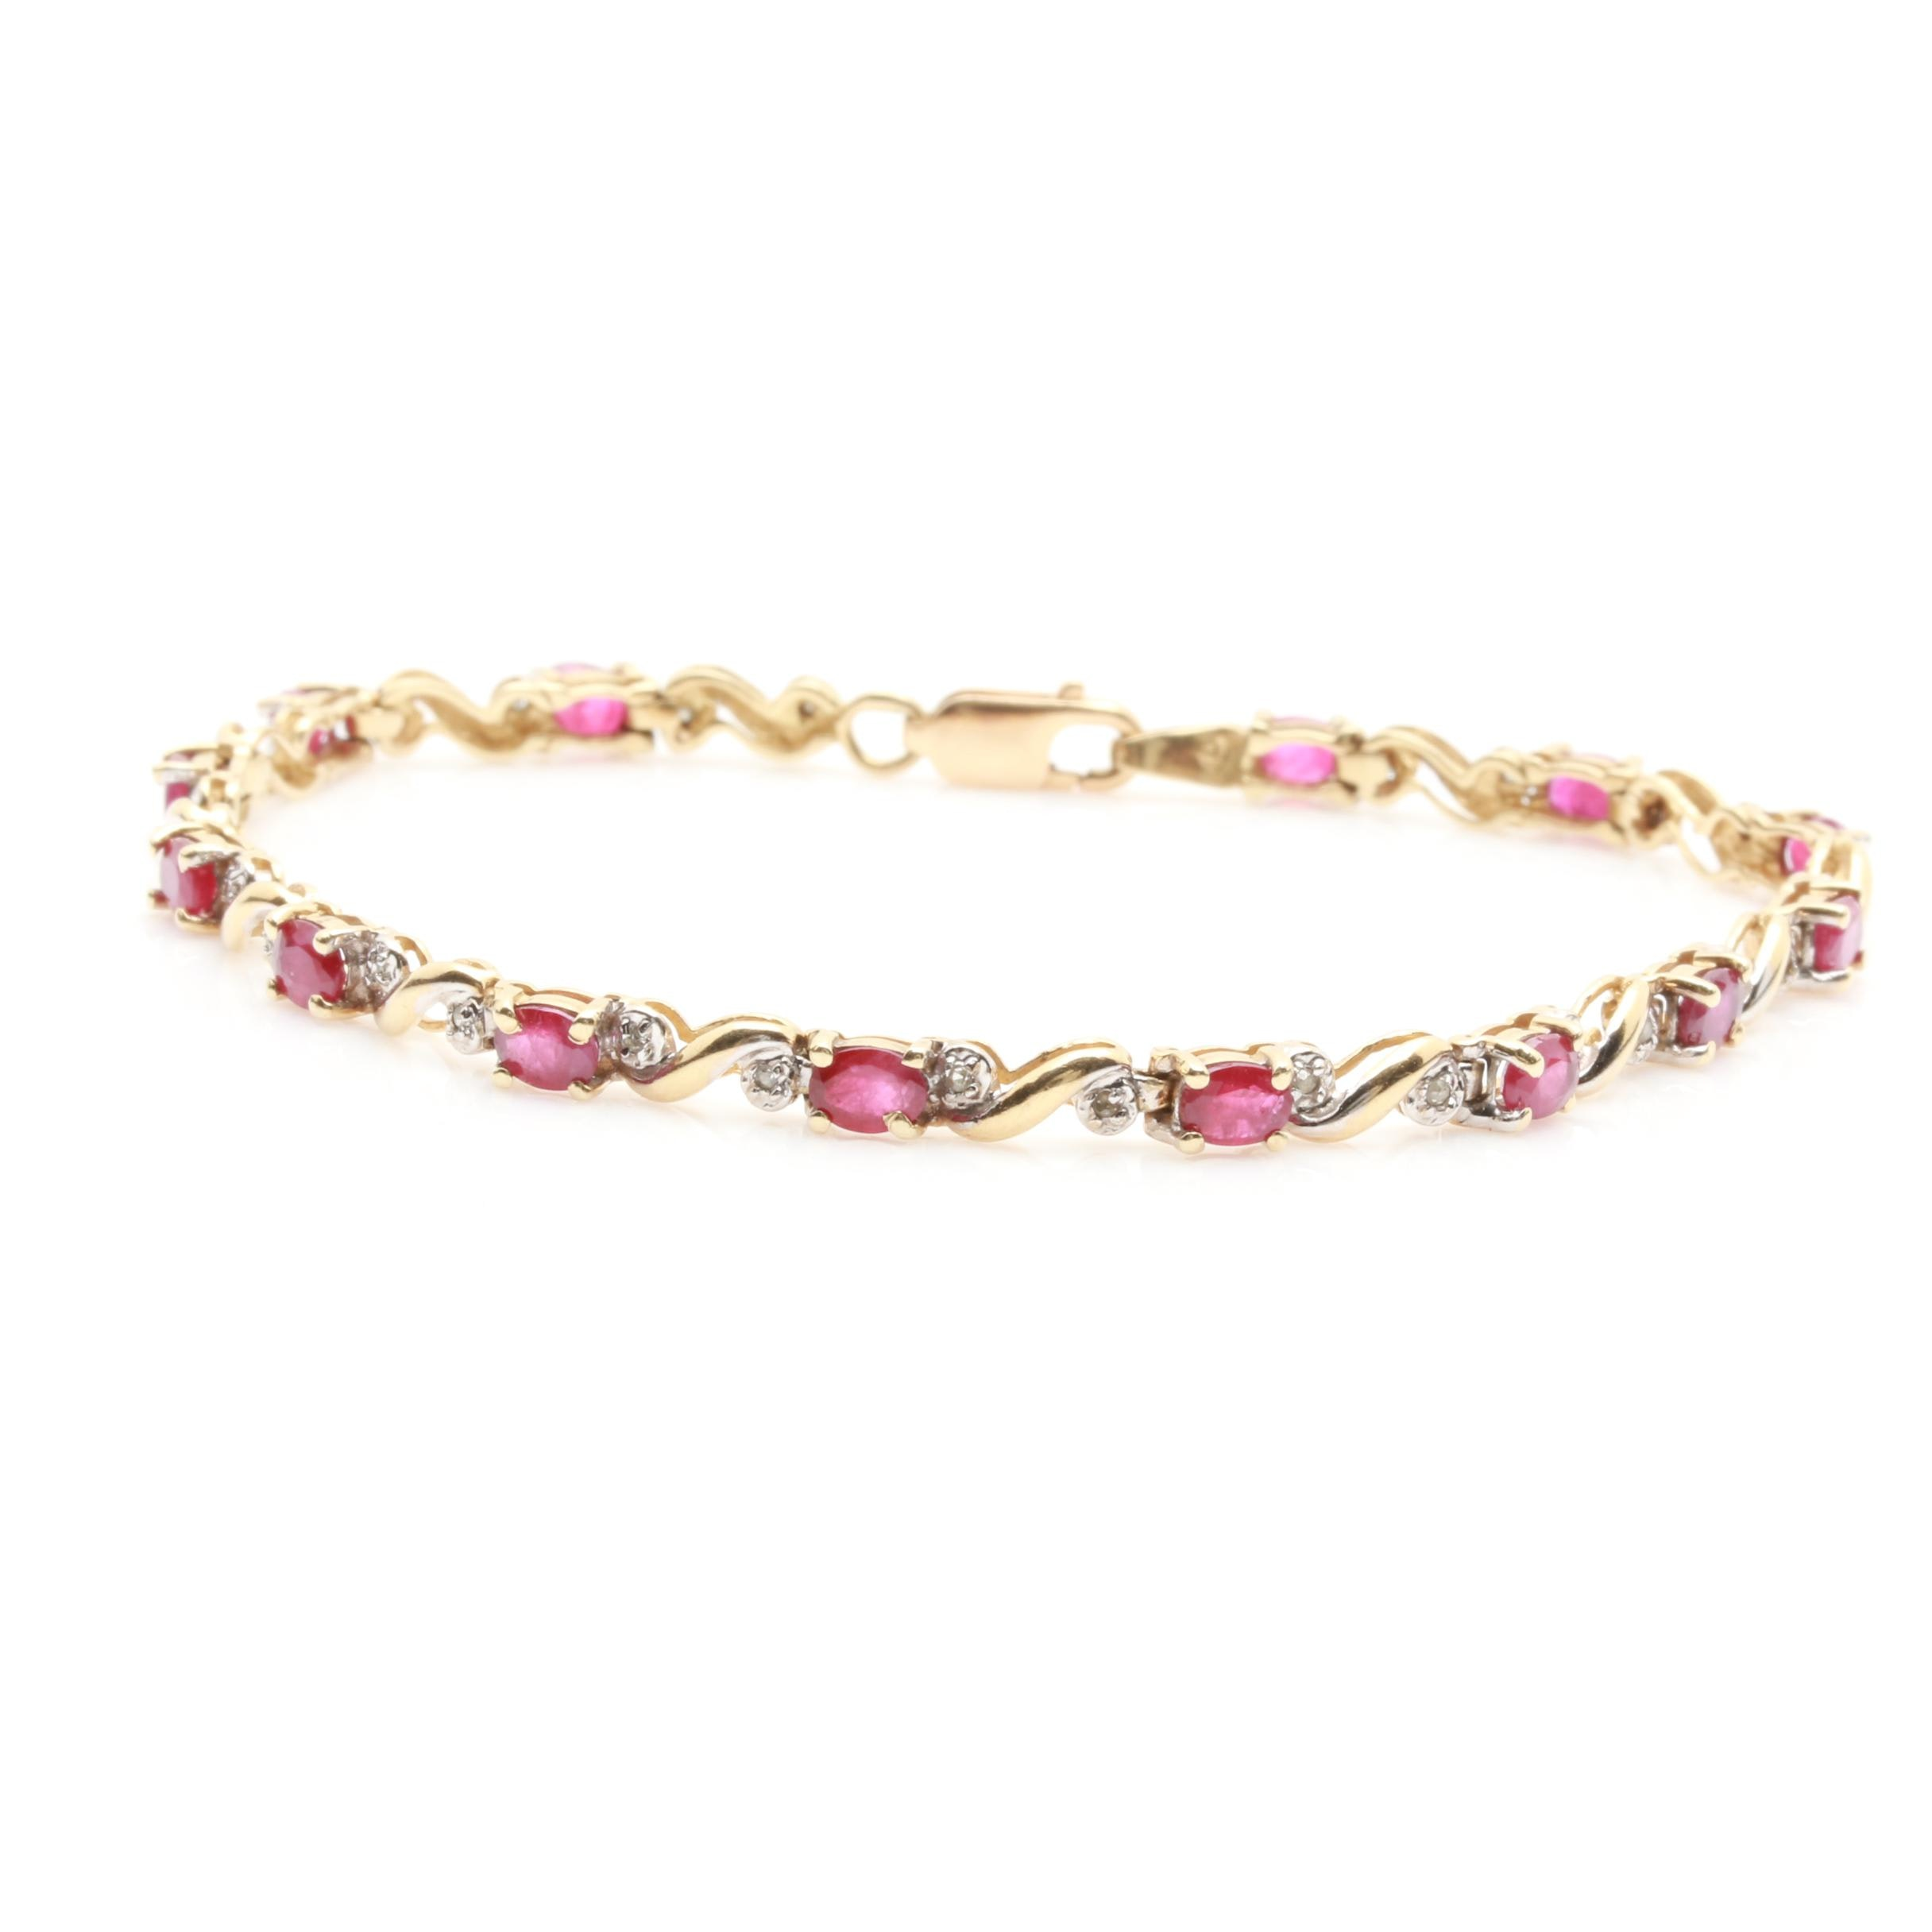 10K Yellow Gold Ruby and Diamond Link Bracelet